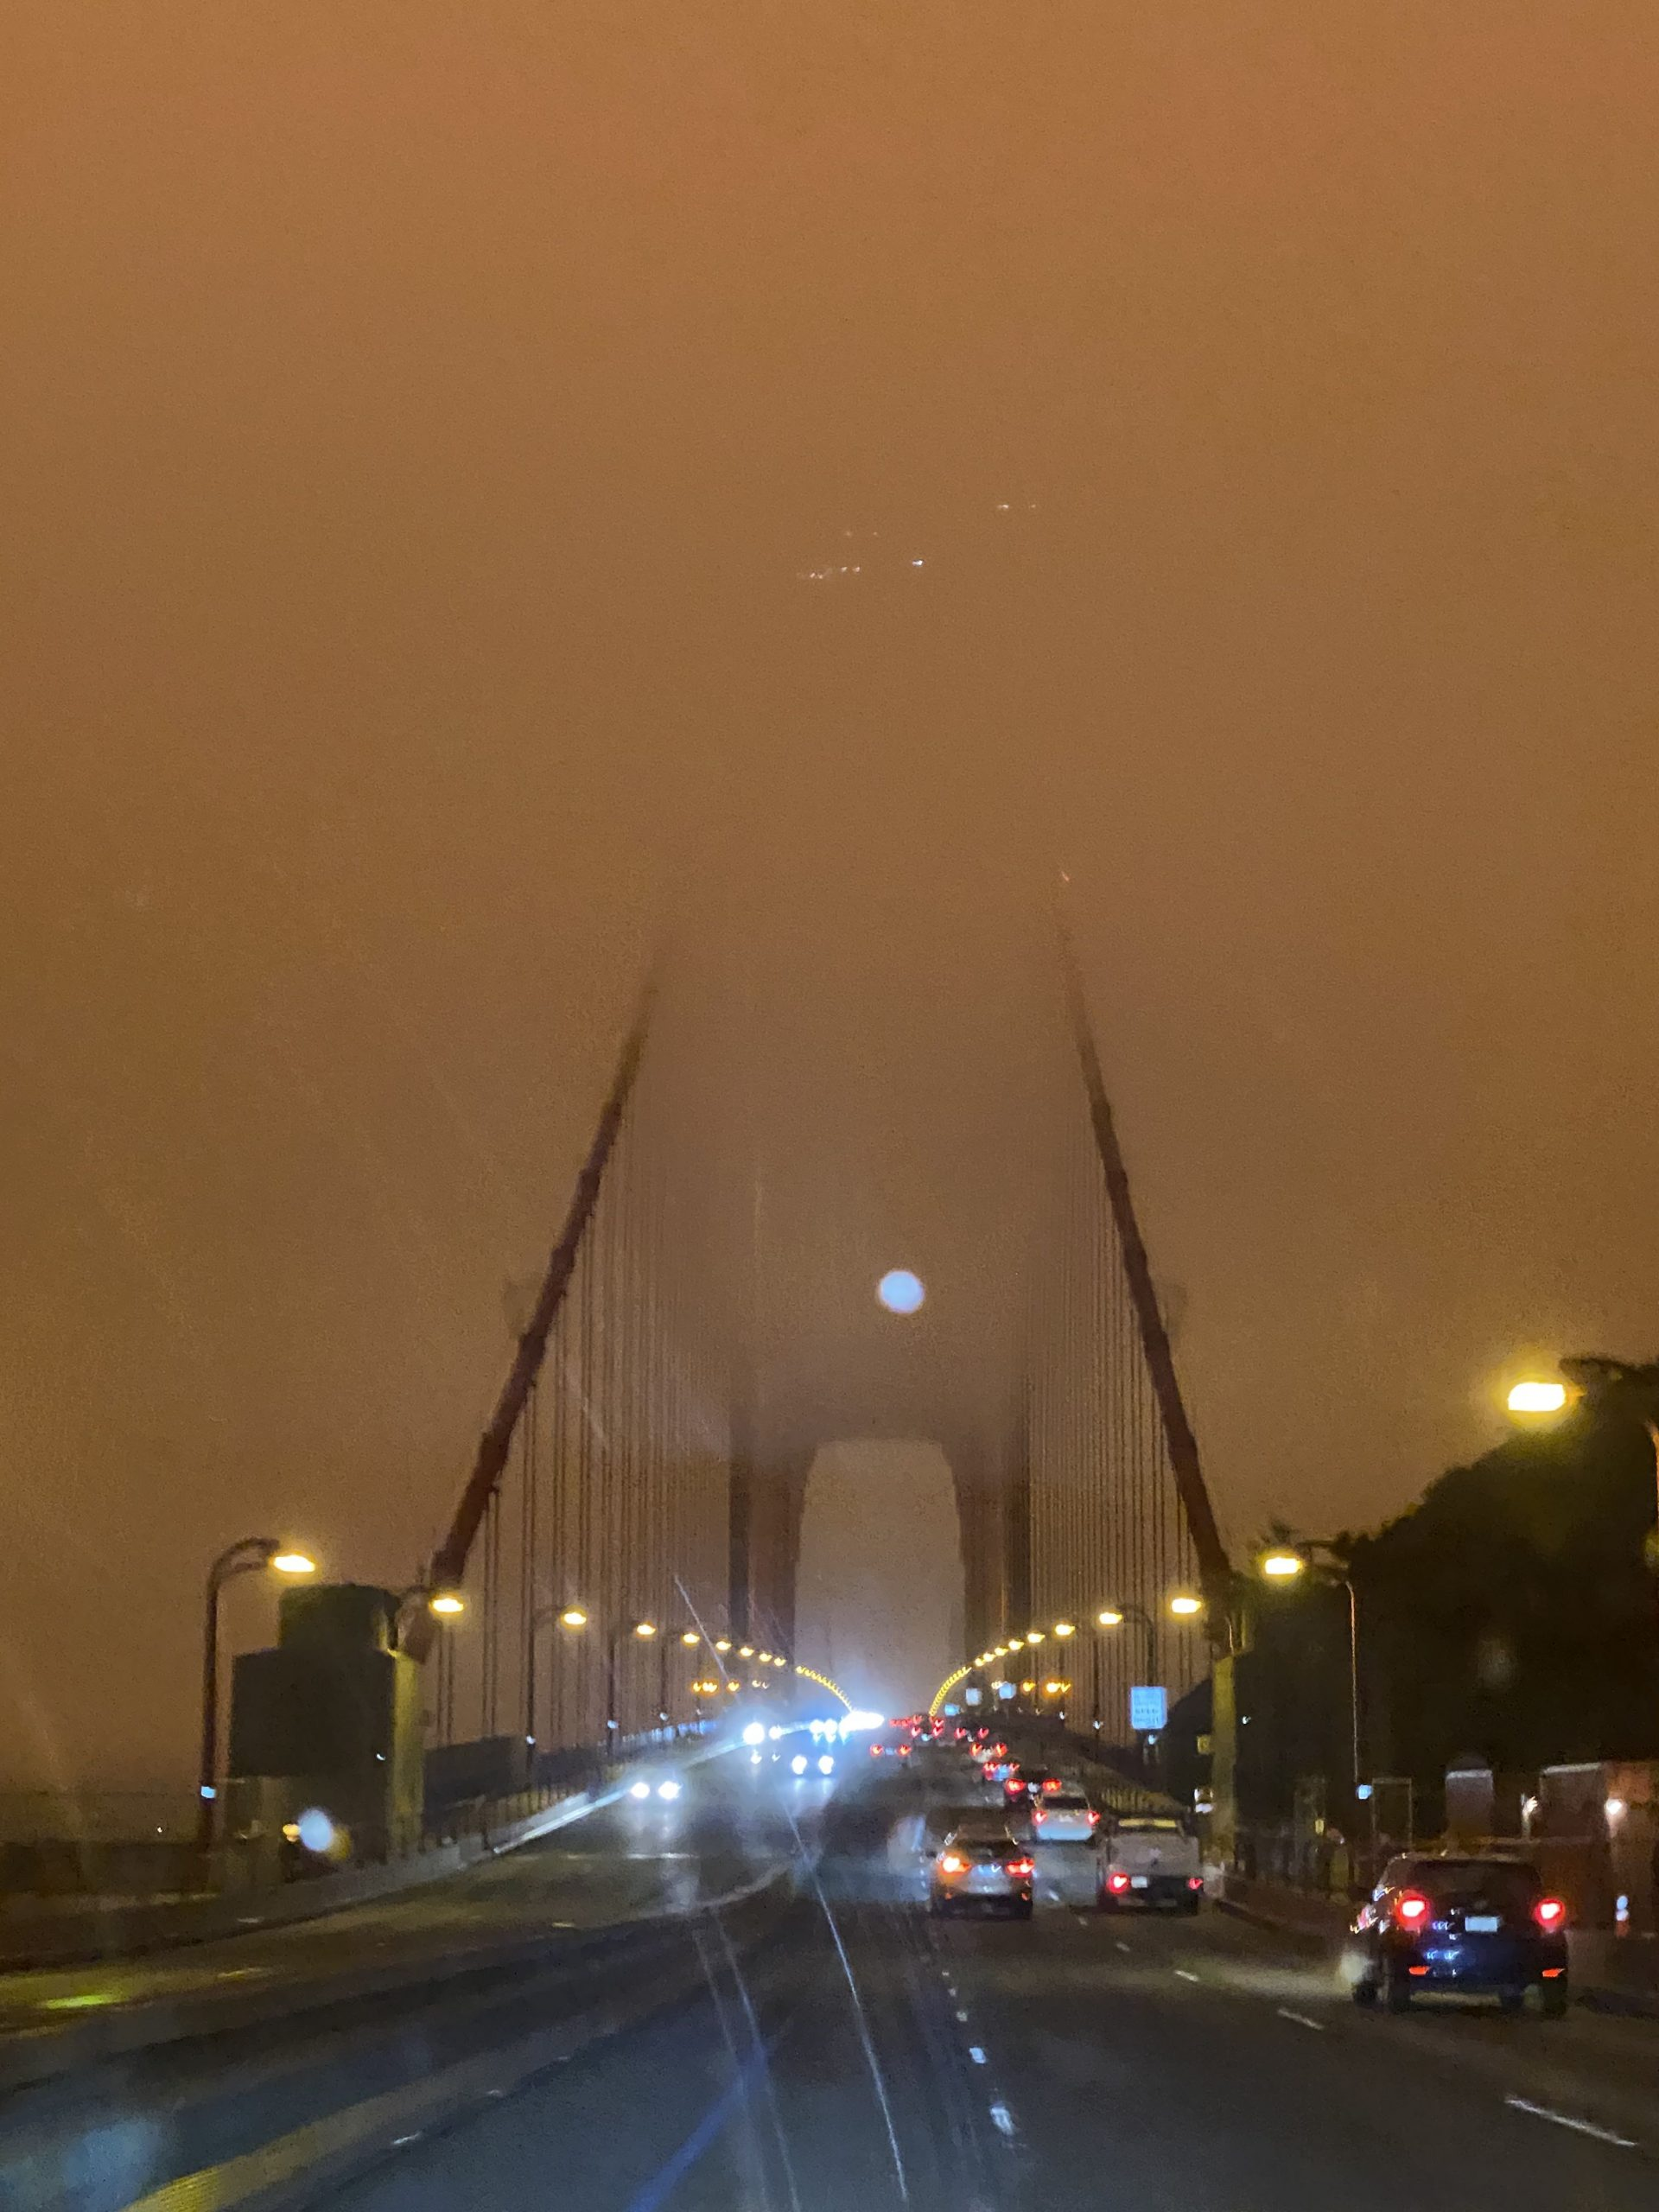 Lynne MacFarlane Blog - driving across the Golden Gate Bridge in Wildfire Smoke and Fog